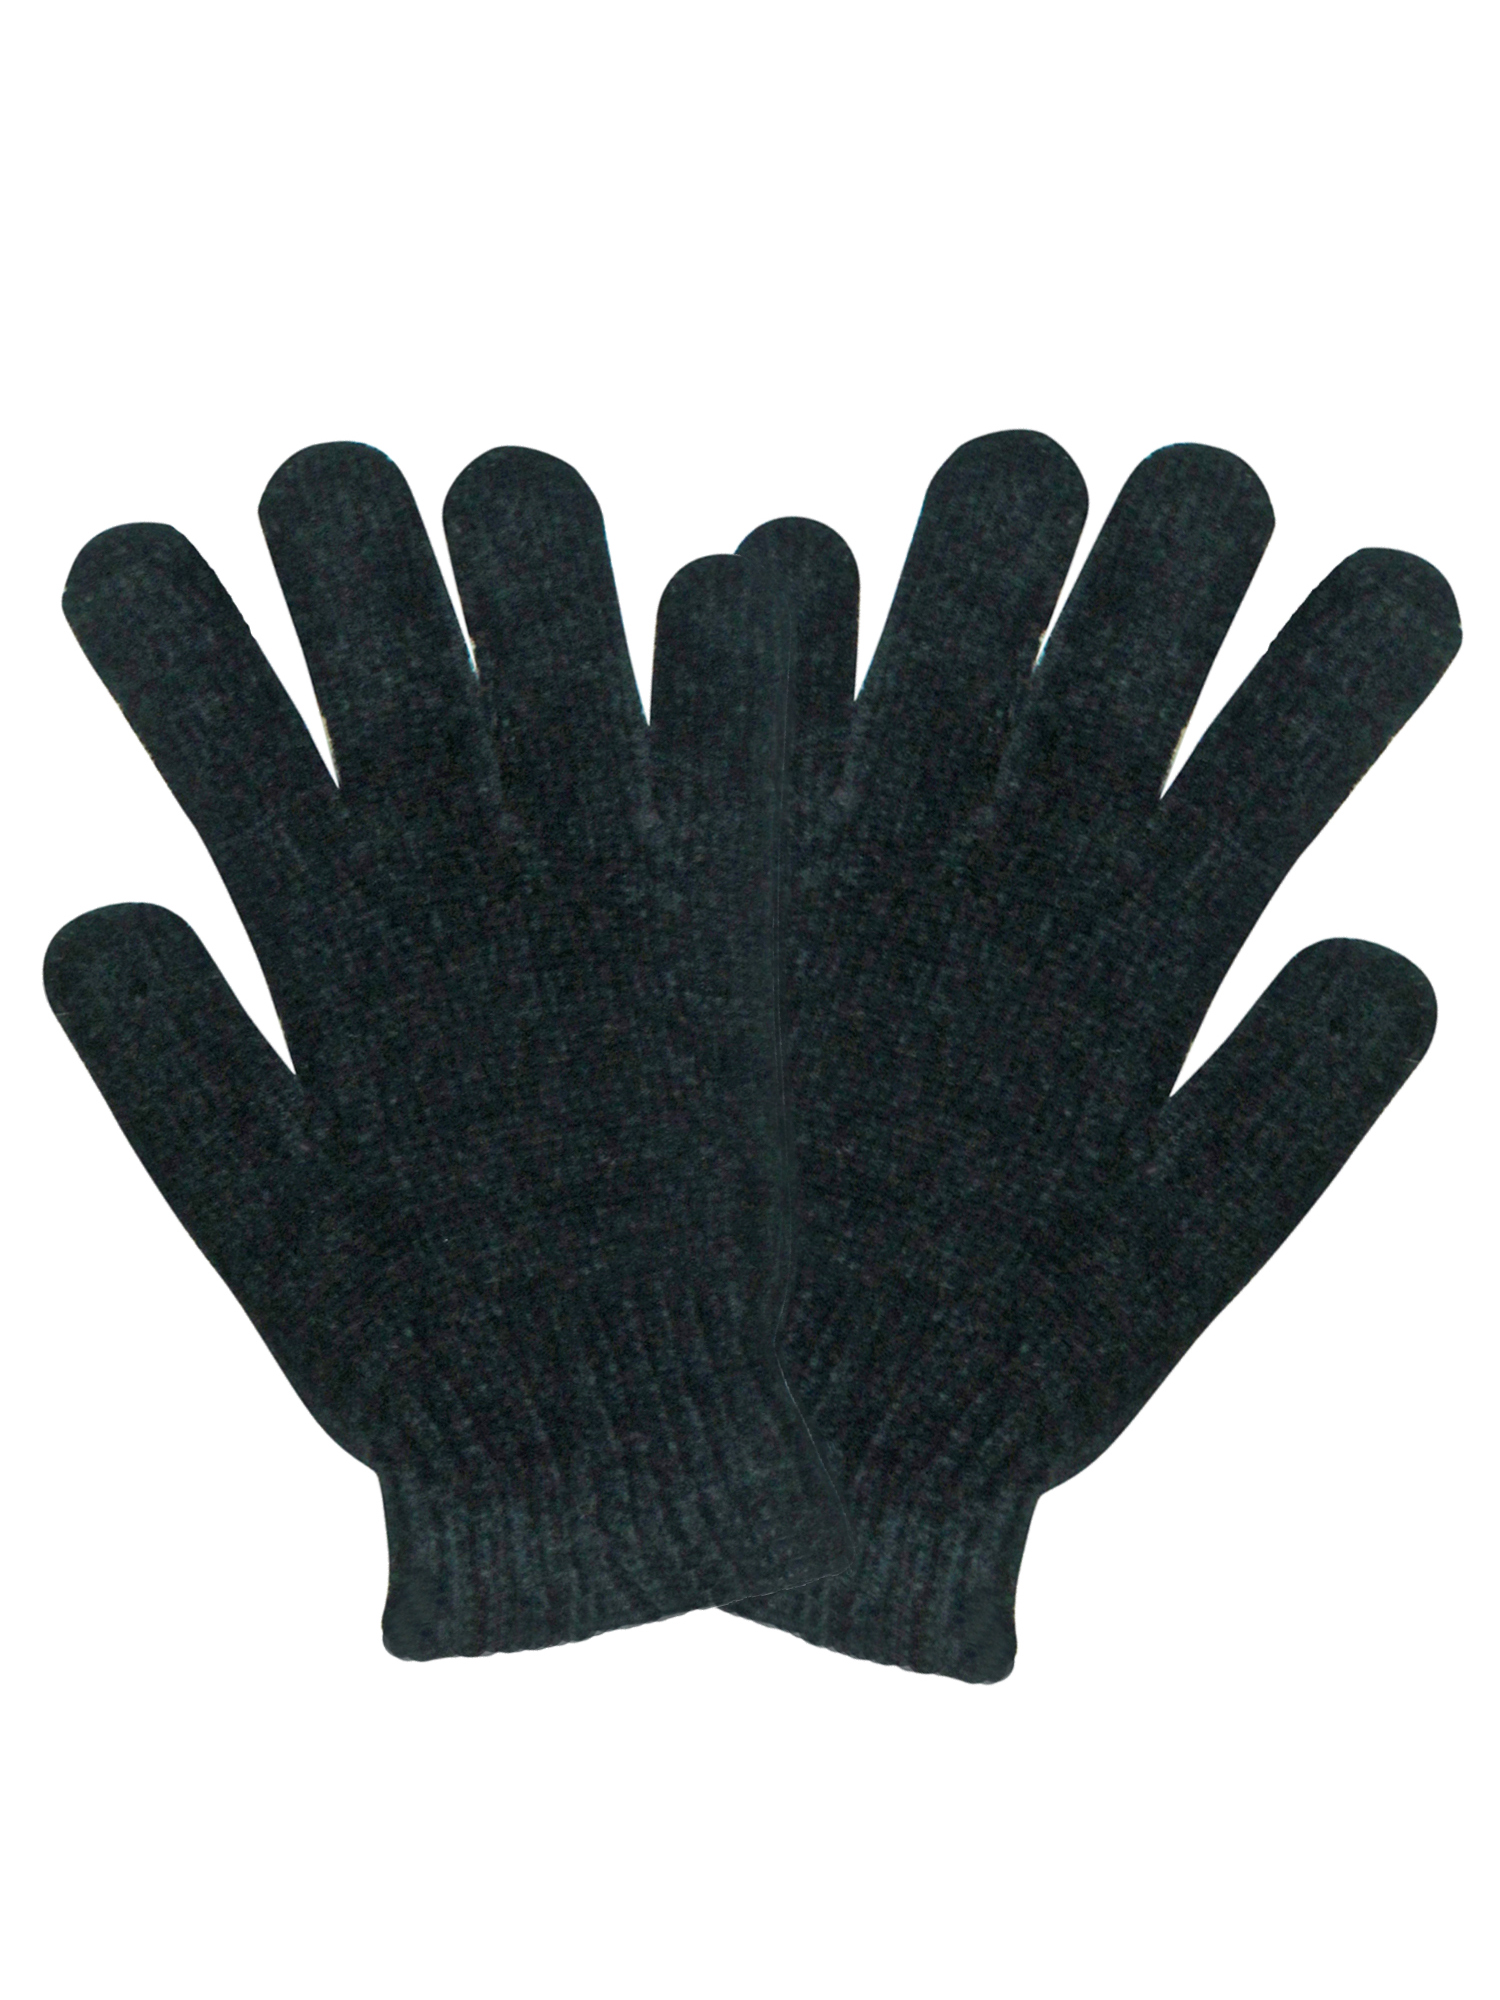 Black Chenille 4 Pack Womens Stretchy Knit Winter Gloves by Winter Gloves